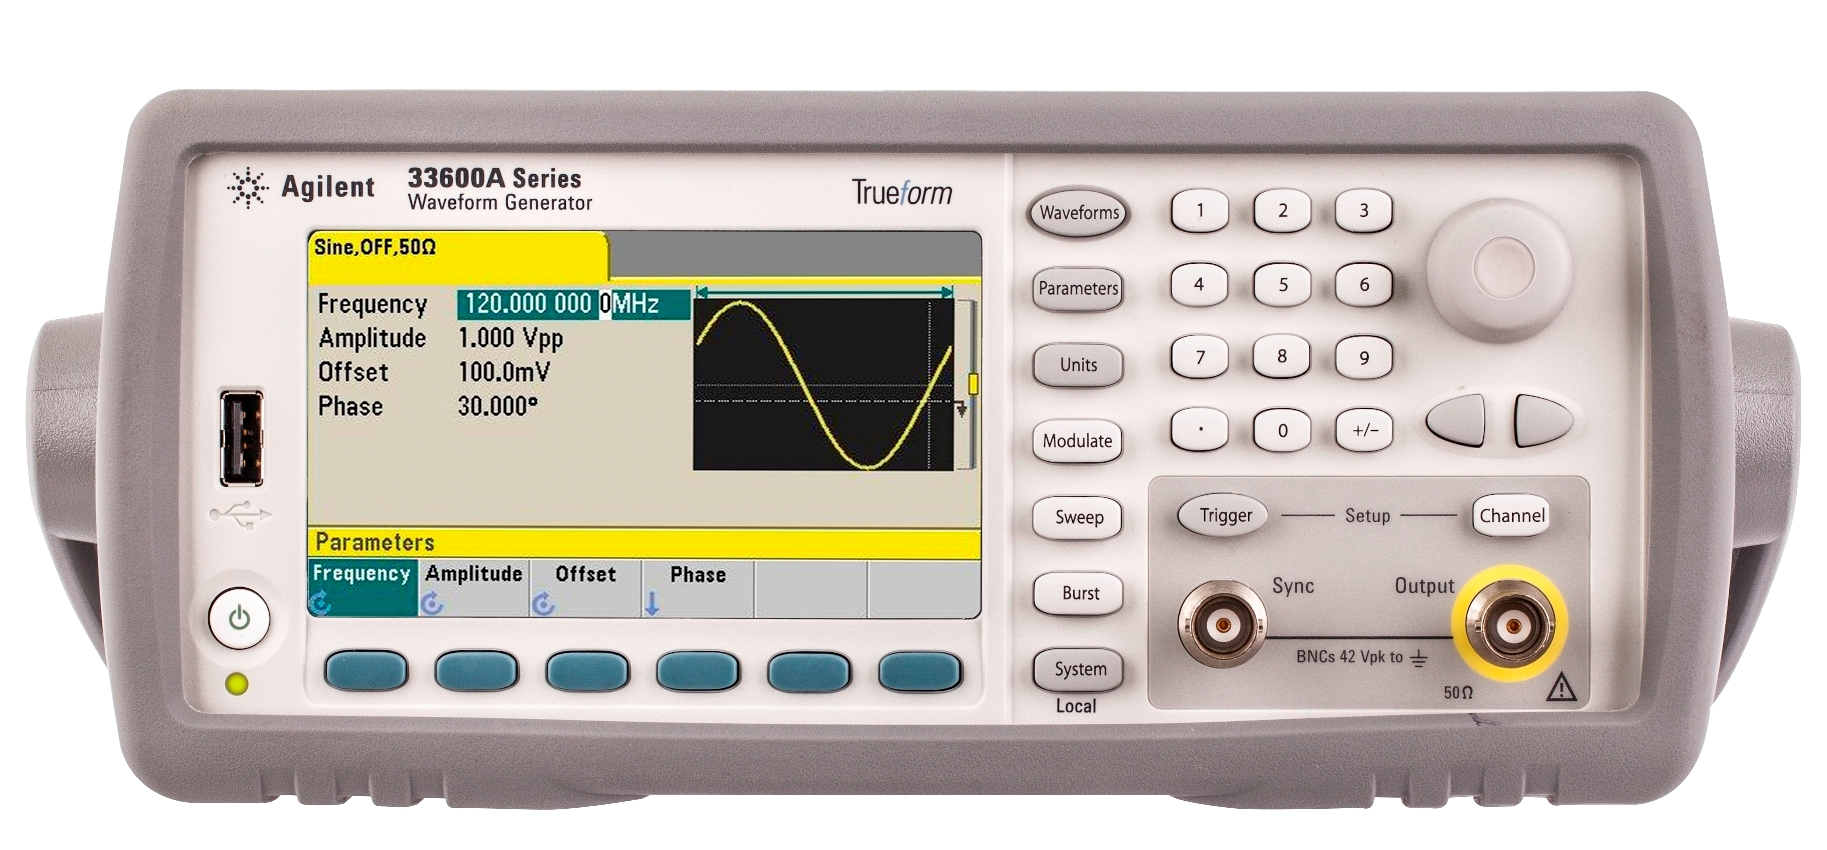 Agilent Technologies' 80- and 120-MHz Trueform Waveform Generators Deliver Unrivaled Capabilities and Signal Accuracy